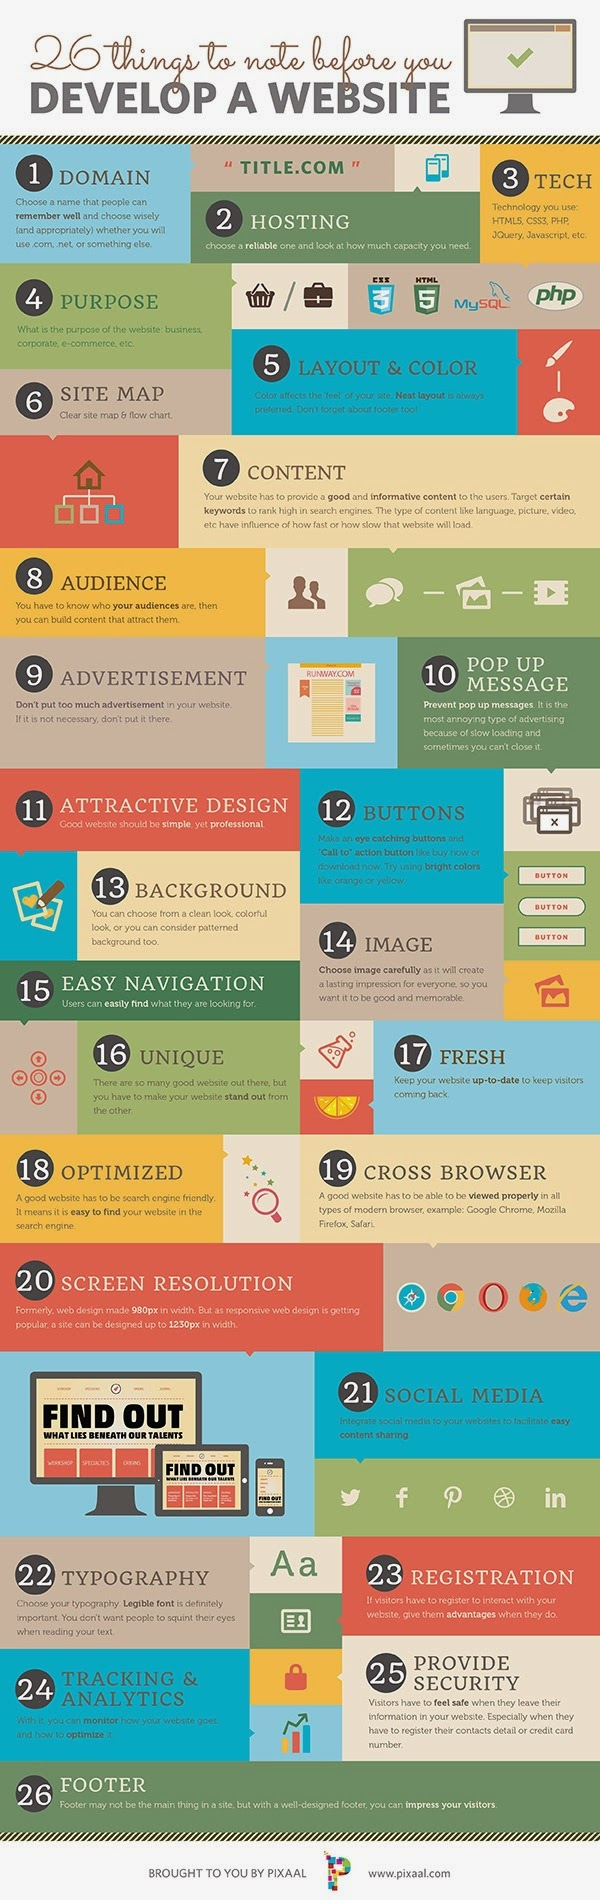 infographic 26 Things to note before you develop a website